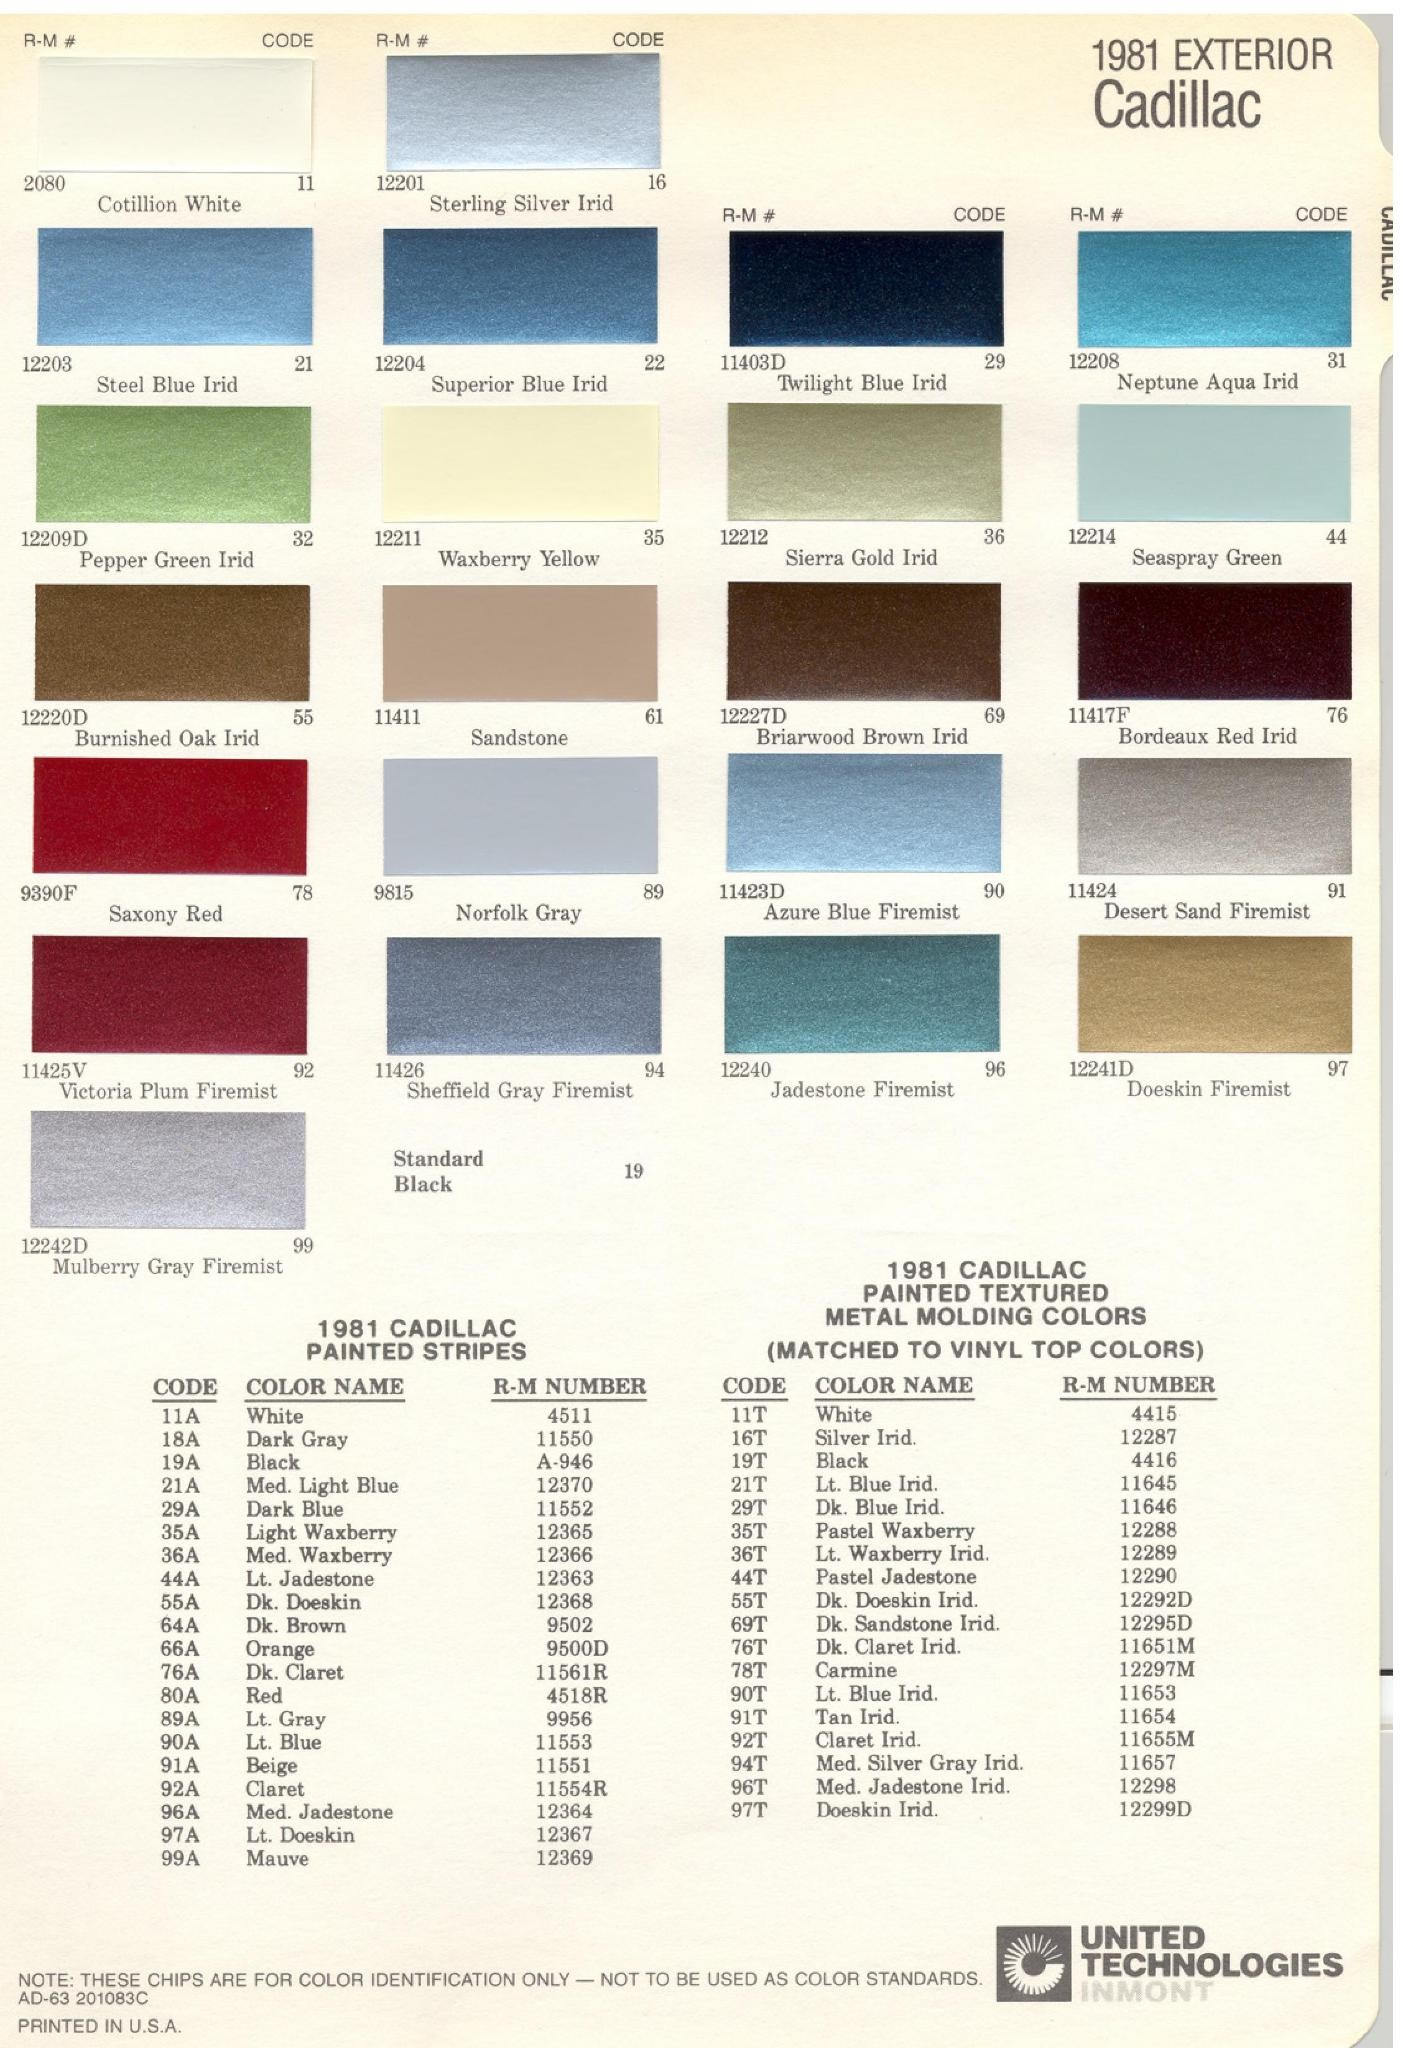 Colors and Color Codes used on General Motors in 1981